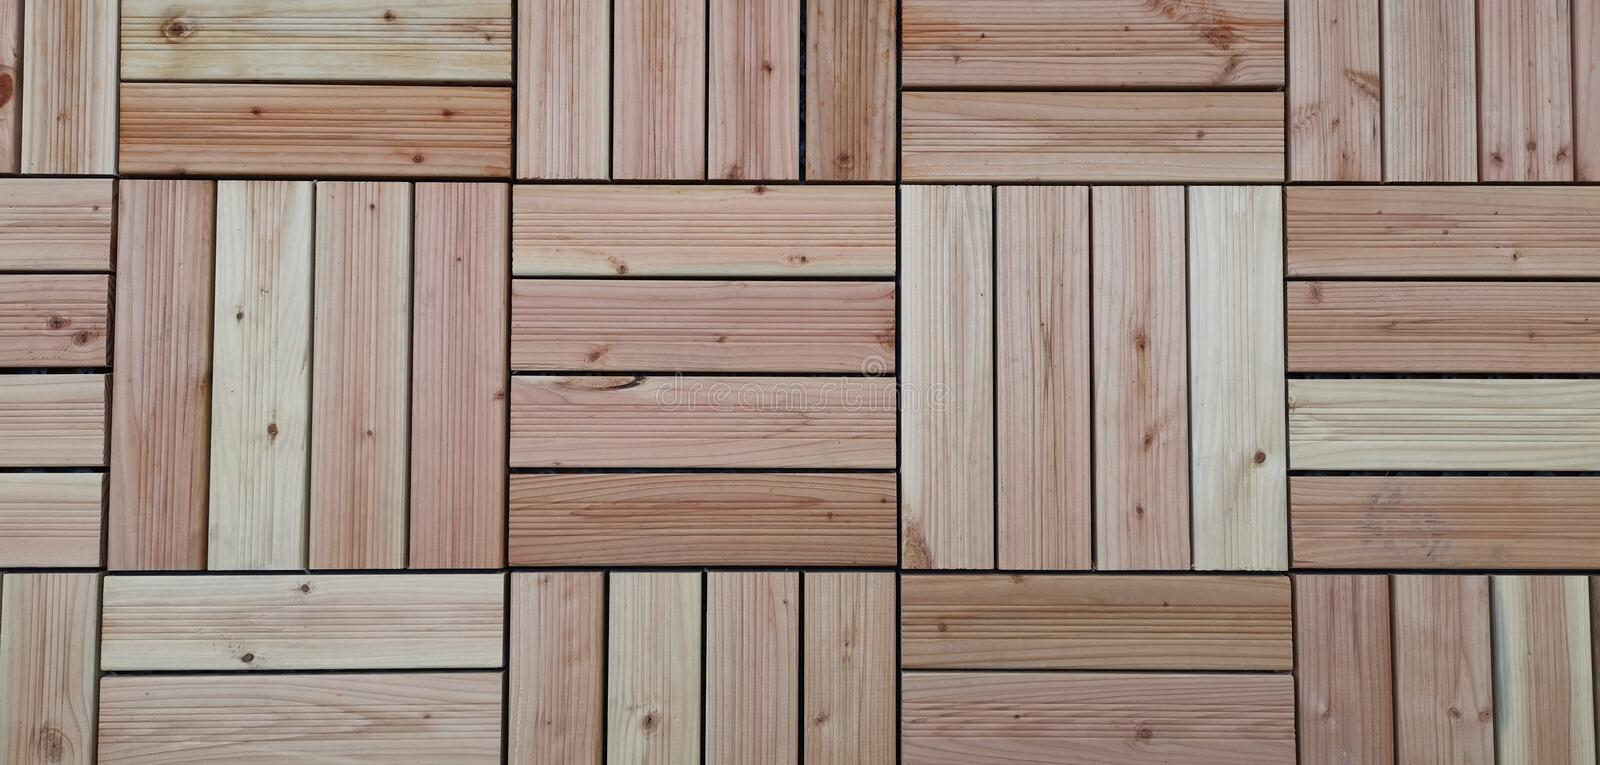 Wooden tiles on terrace. background pattern. royalty free stock photos